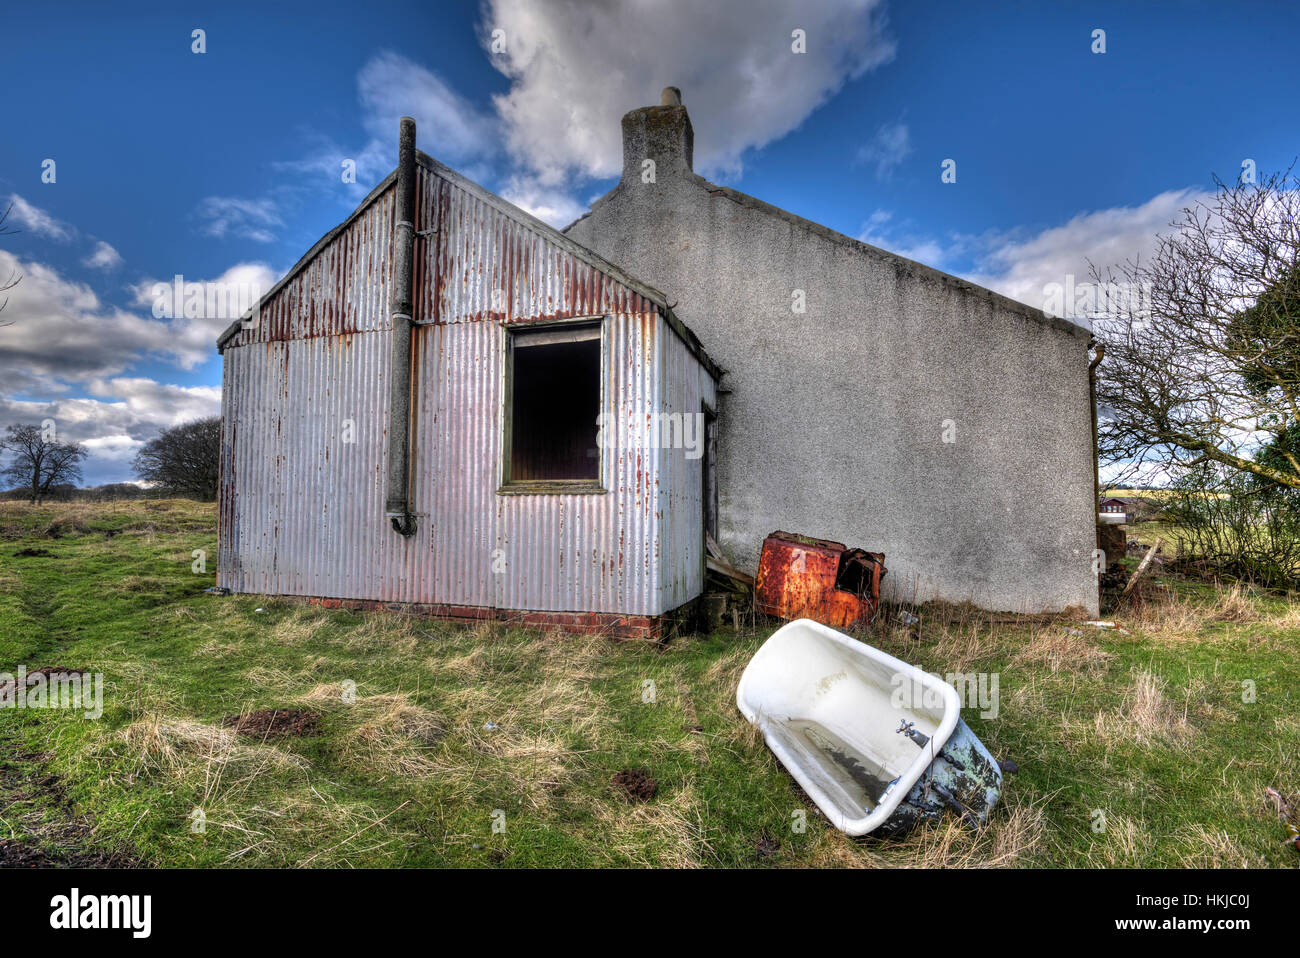 Derelict cottage and car near the small village of Forth Lanarkshire. - Stock Image